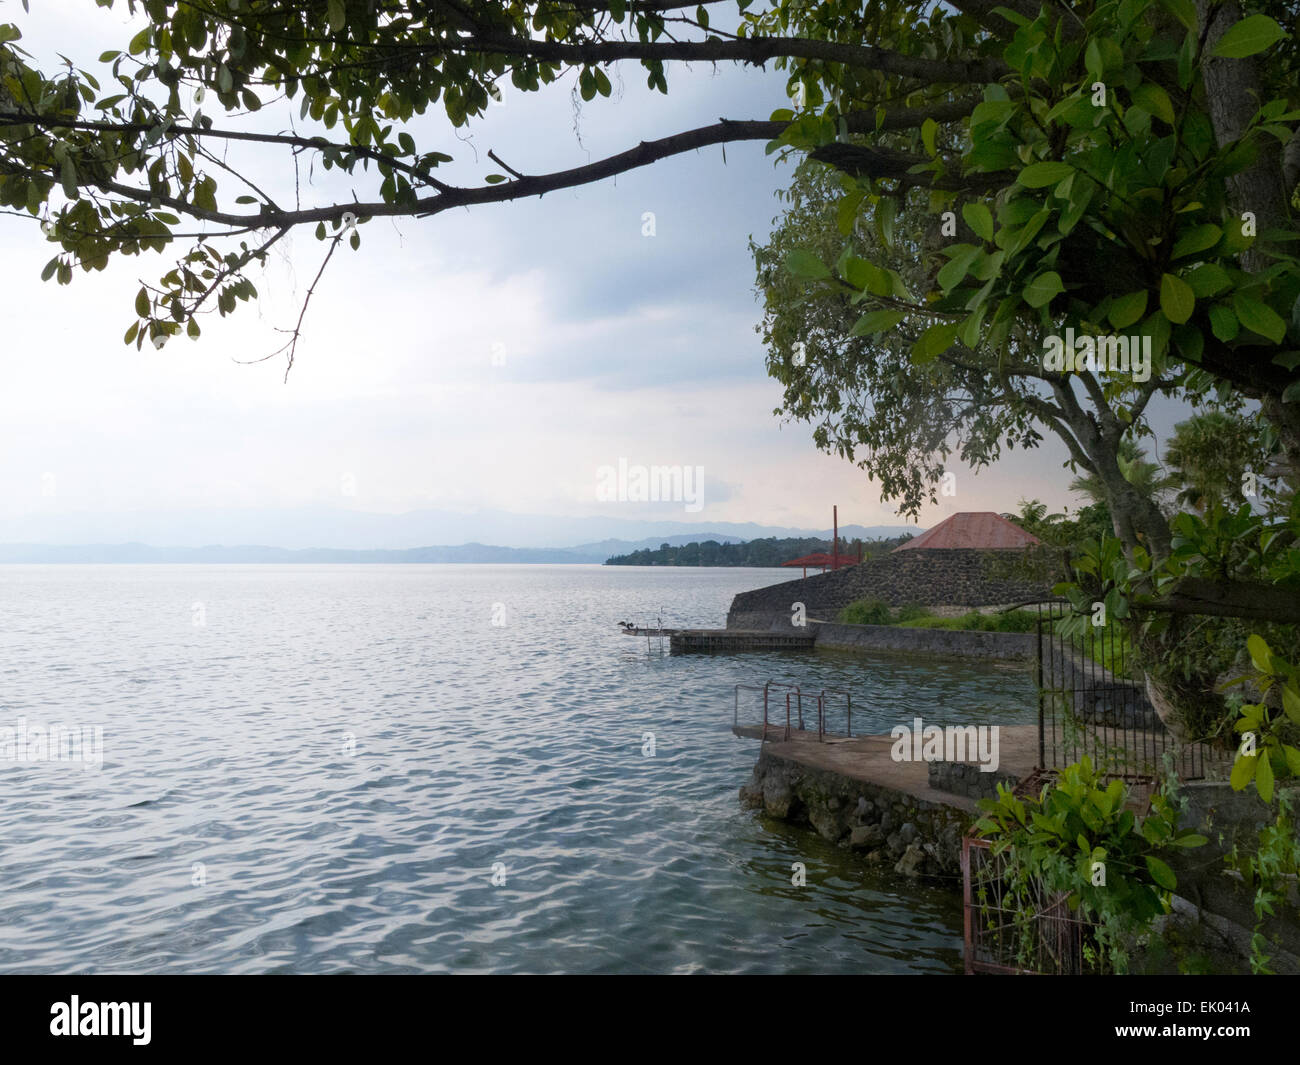 The shores of Lake Kivu at Goma, Democratic Republic of Congo, Africa - Stock Image